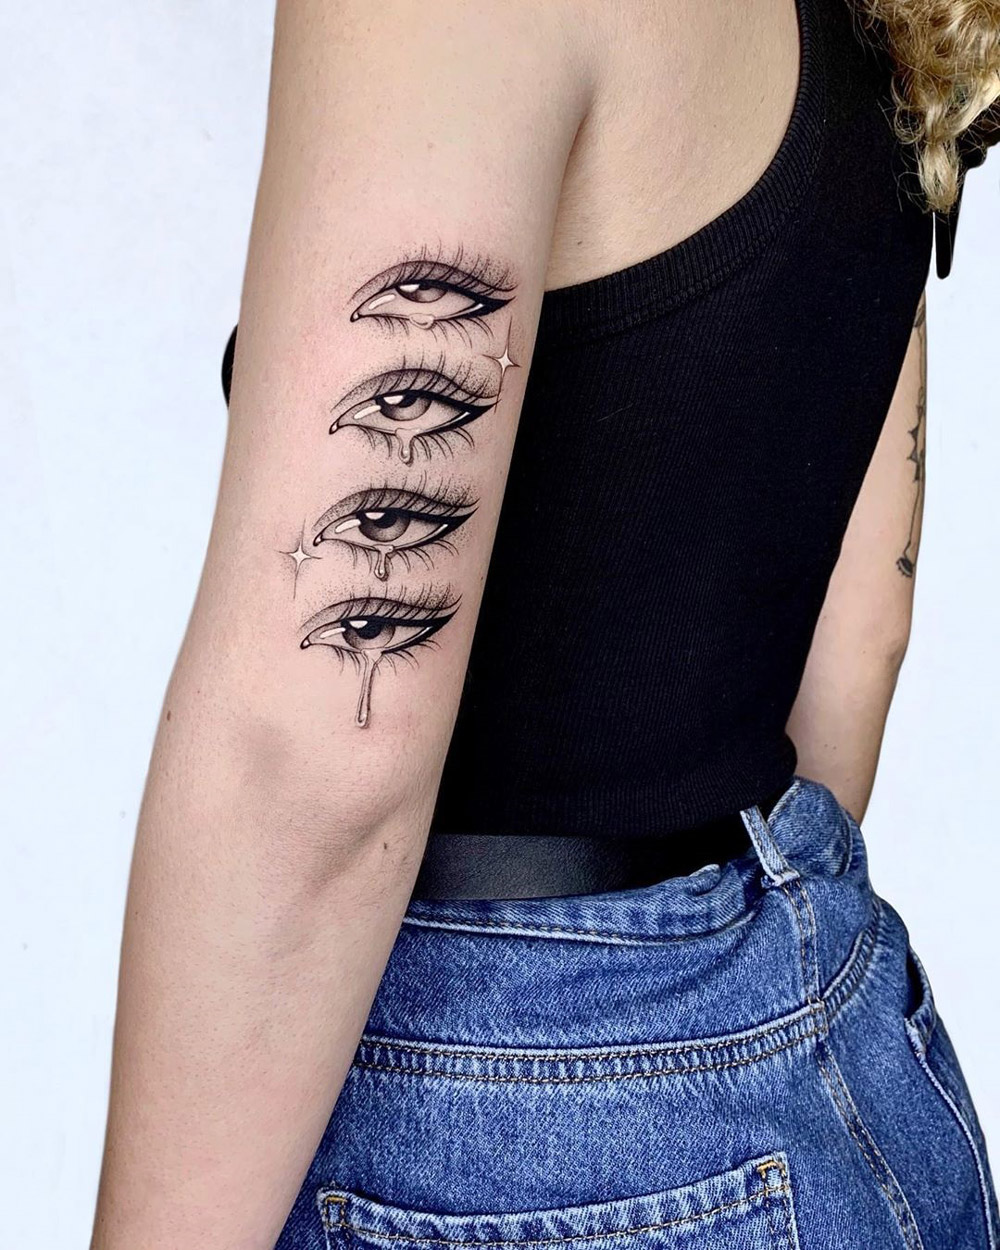 Crying Eyes, girl's arm tattoo